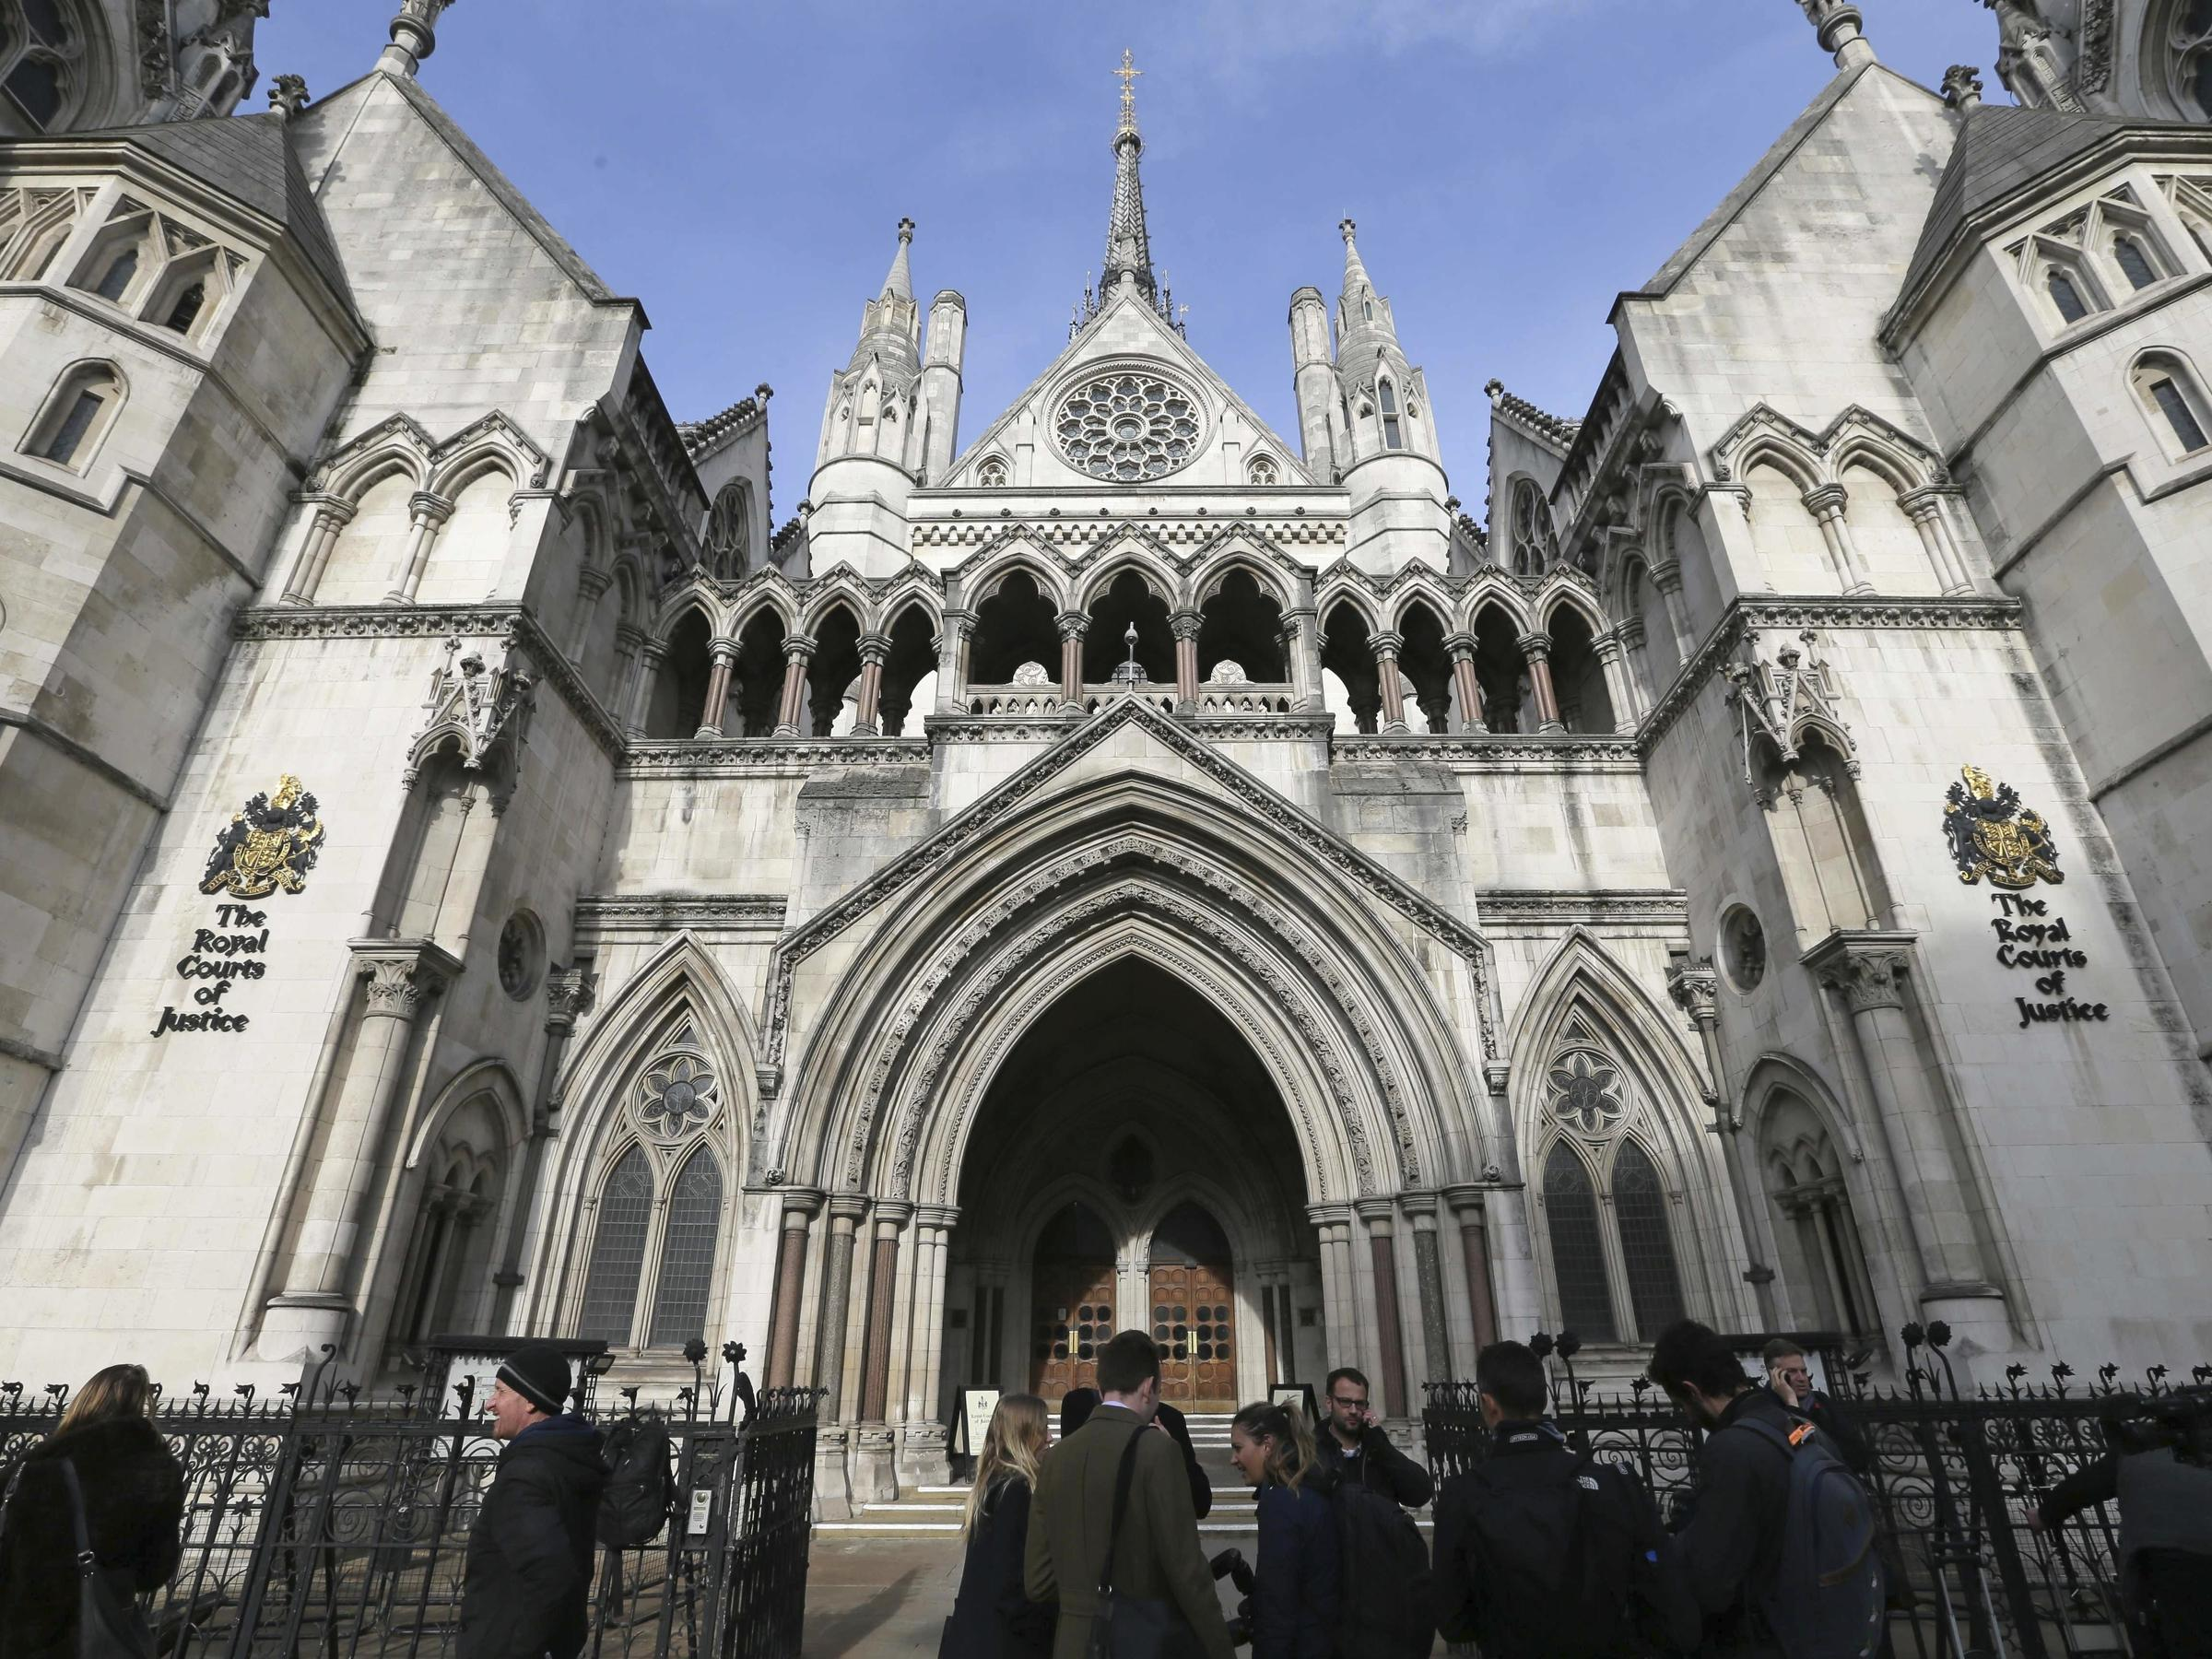 UK government to appeal court ruling on triggering Brexit